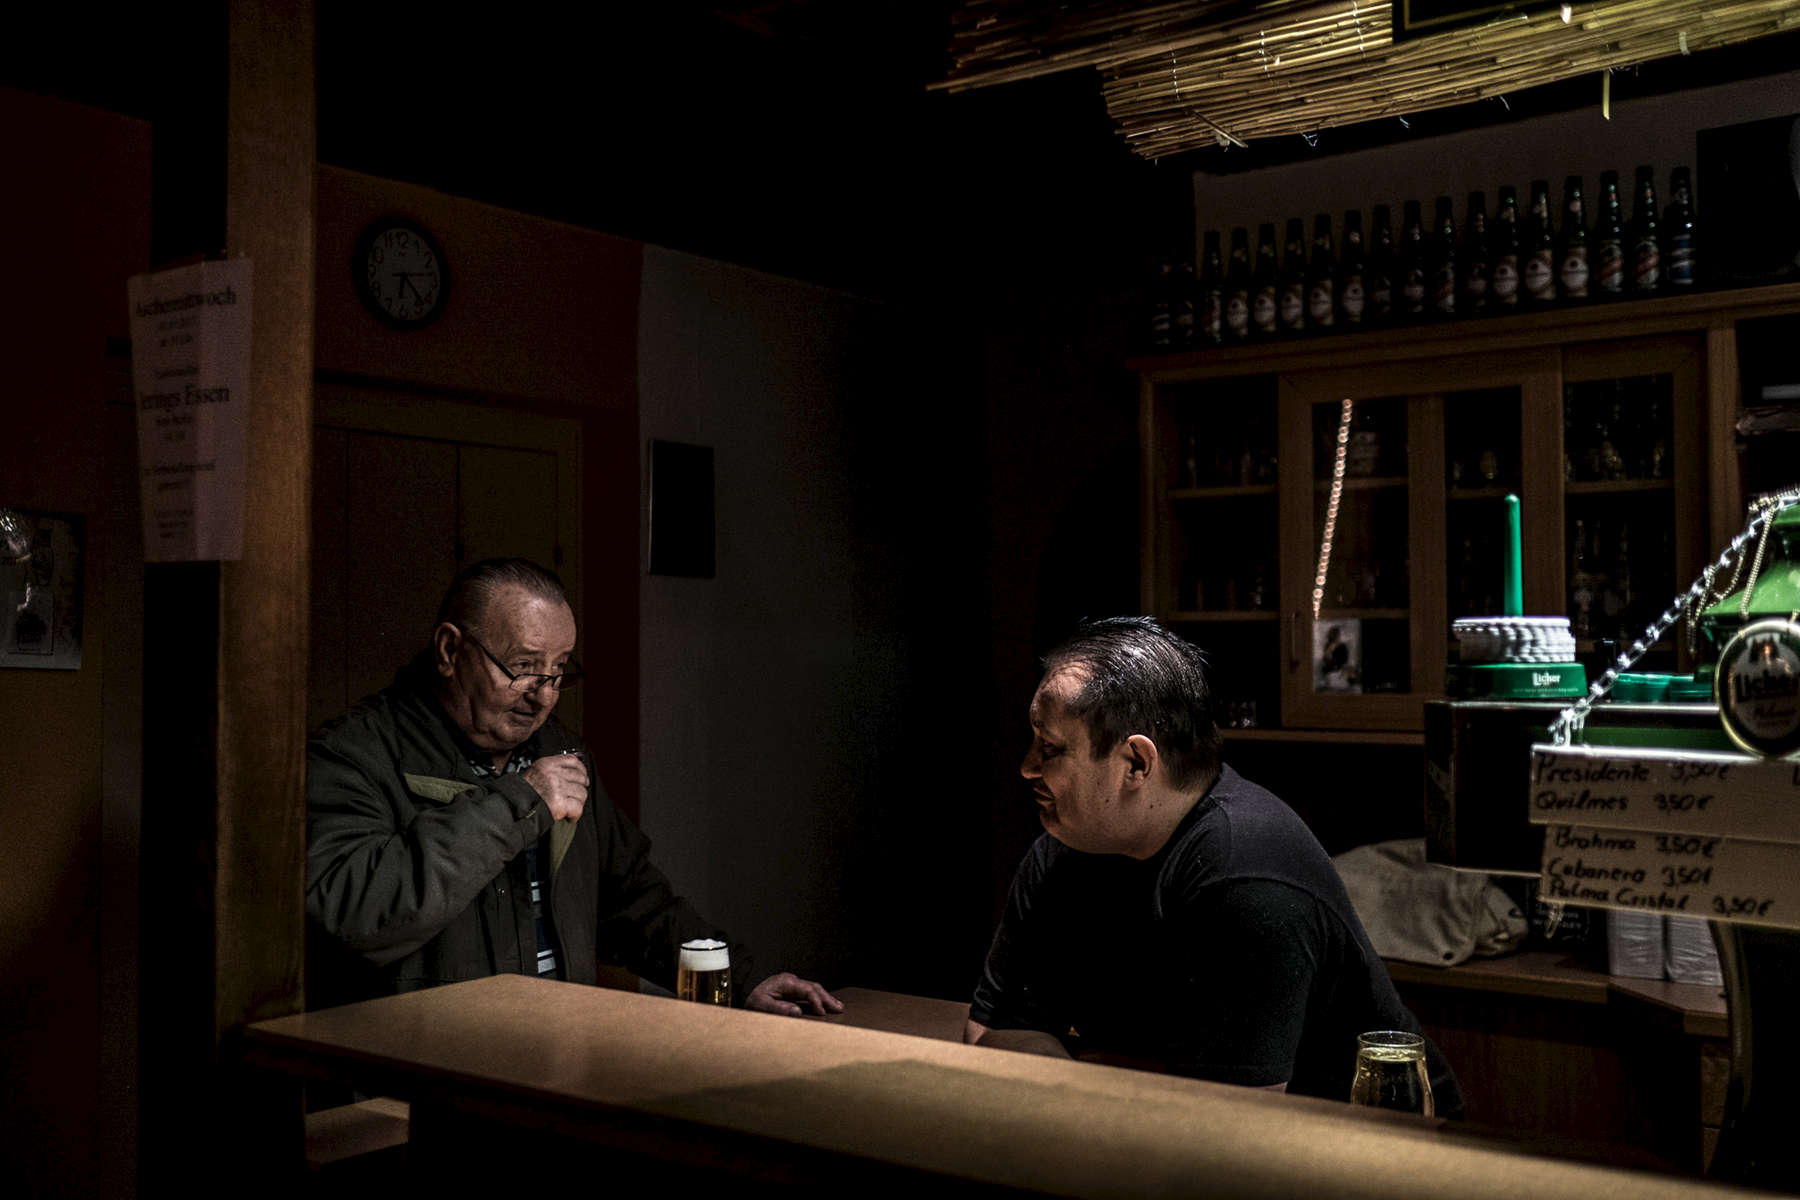 Men drinking inside a football club's pub - for the {quote}Heimatreporter{quote} series by ZEIT online (http://www.zeit.de/sport/2017-03/laufdorf-hessen-fussballvereine-heimatreporter-d17)